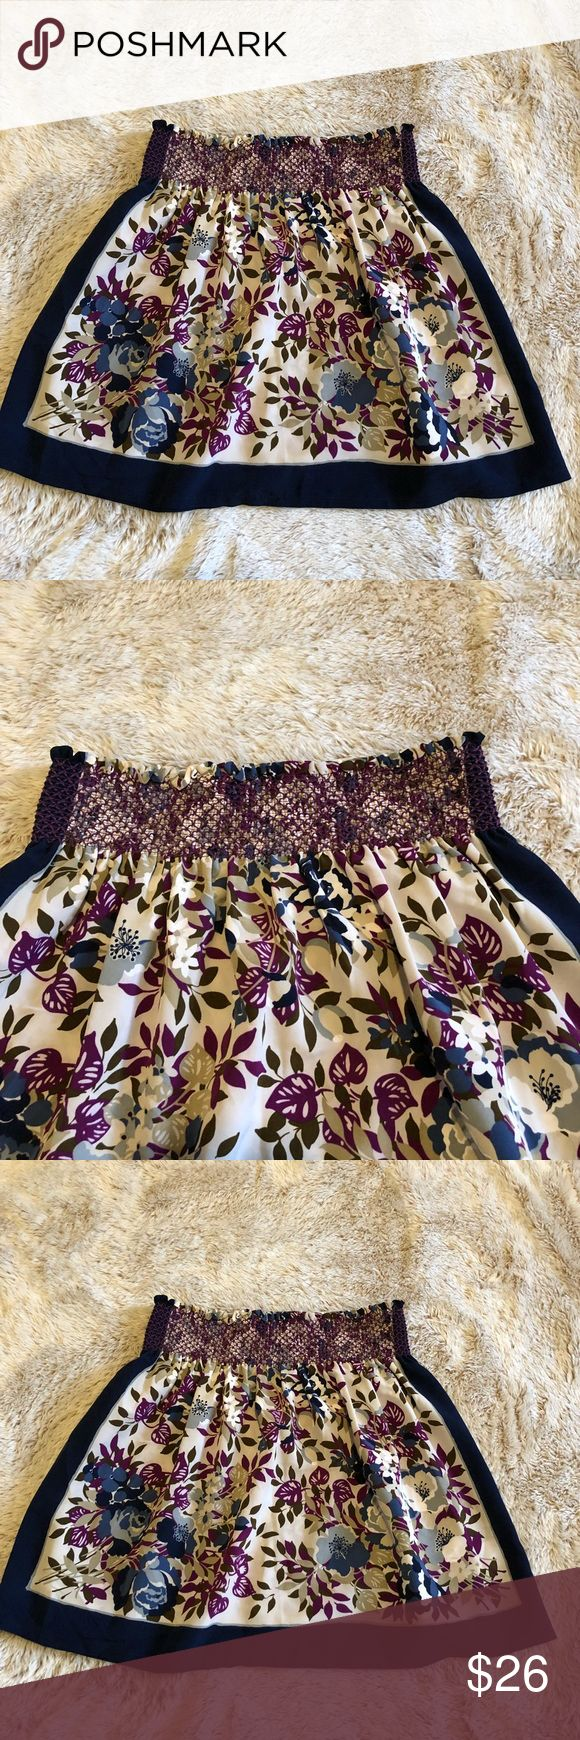 Urban Outfitters Kimchi Blue Floral Mini Skirt, S Adorable floral mini skirt from Urban Outfitters Kimchi Blue. A gathered elastic top and beautiful dark blue color blocks on the side framing in the purple and blue floral pattern. Women's size small. In perfect condition! No stains or rips. Kimchi Blue Skirts Mini